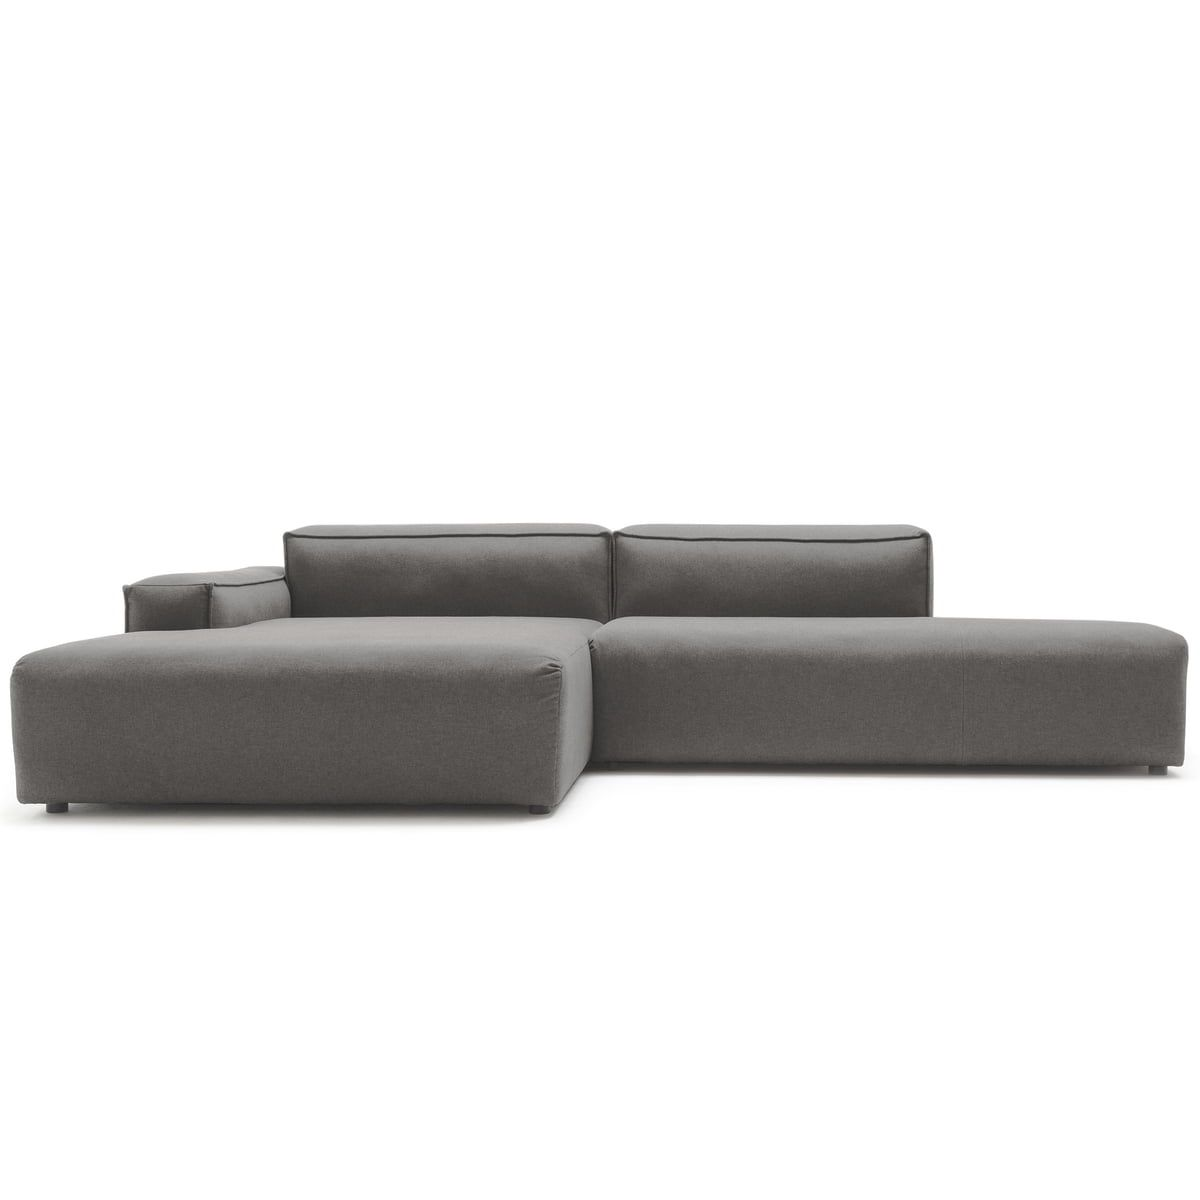 175 Corner Sofa By Freistil Rolf Benz Corner Sofa Covers Corner Sofa Couch